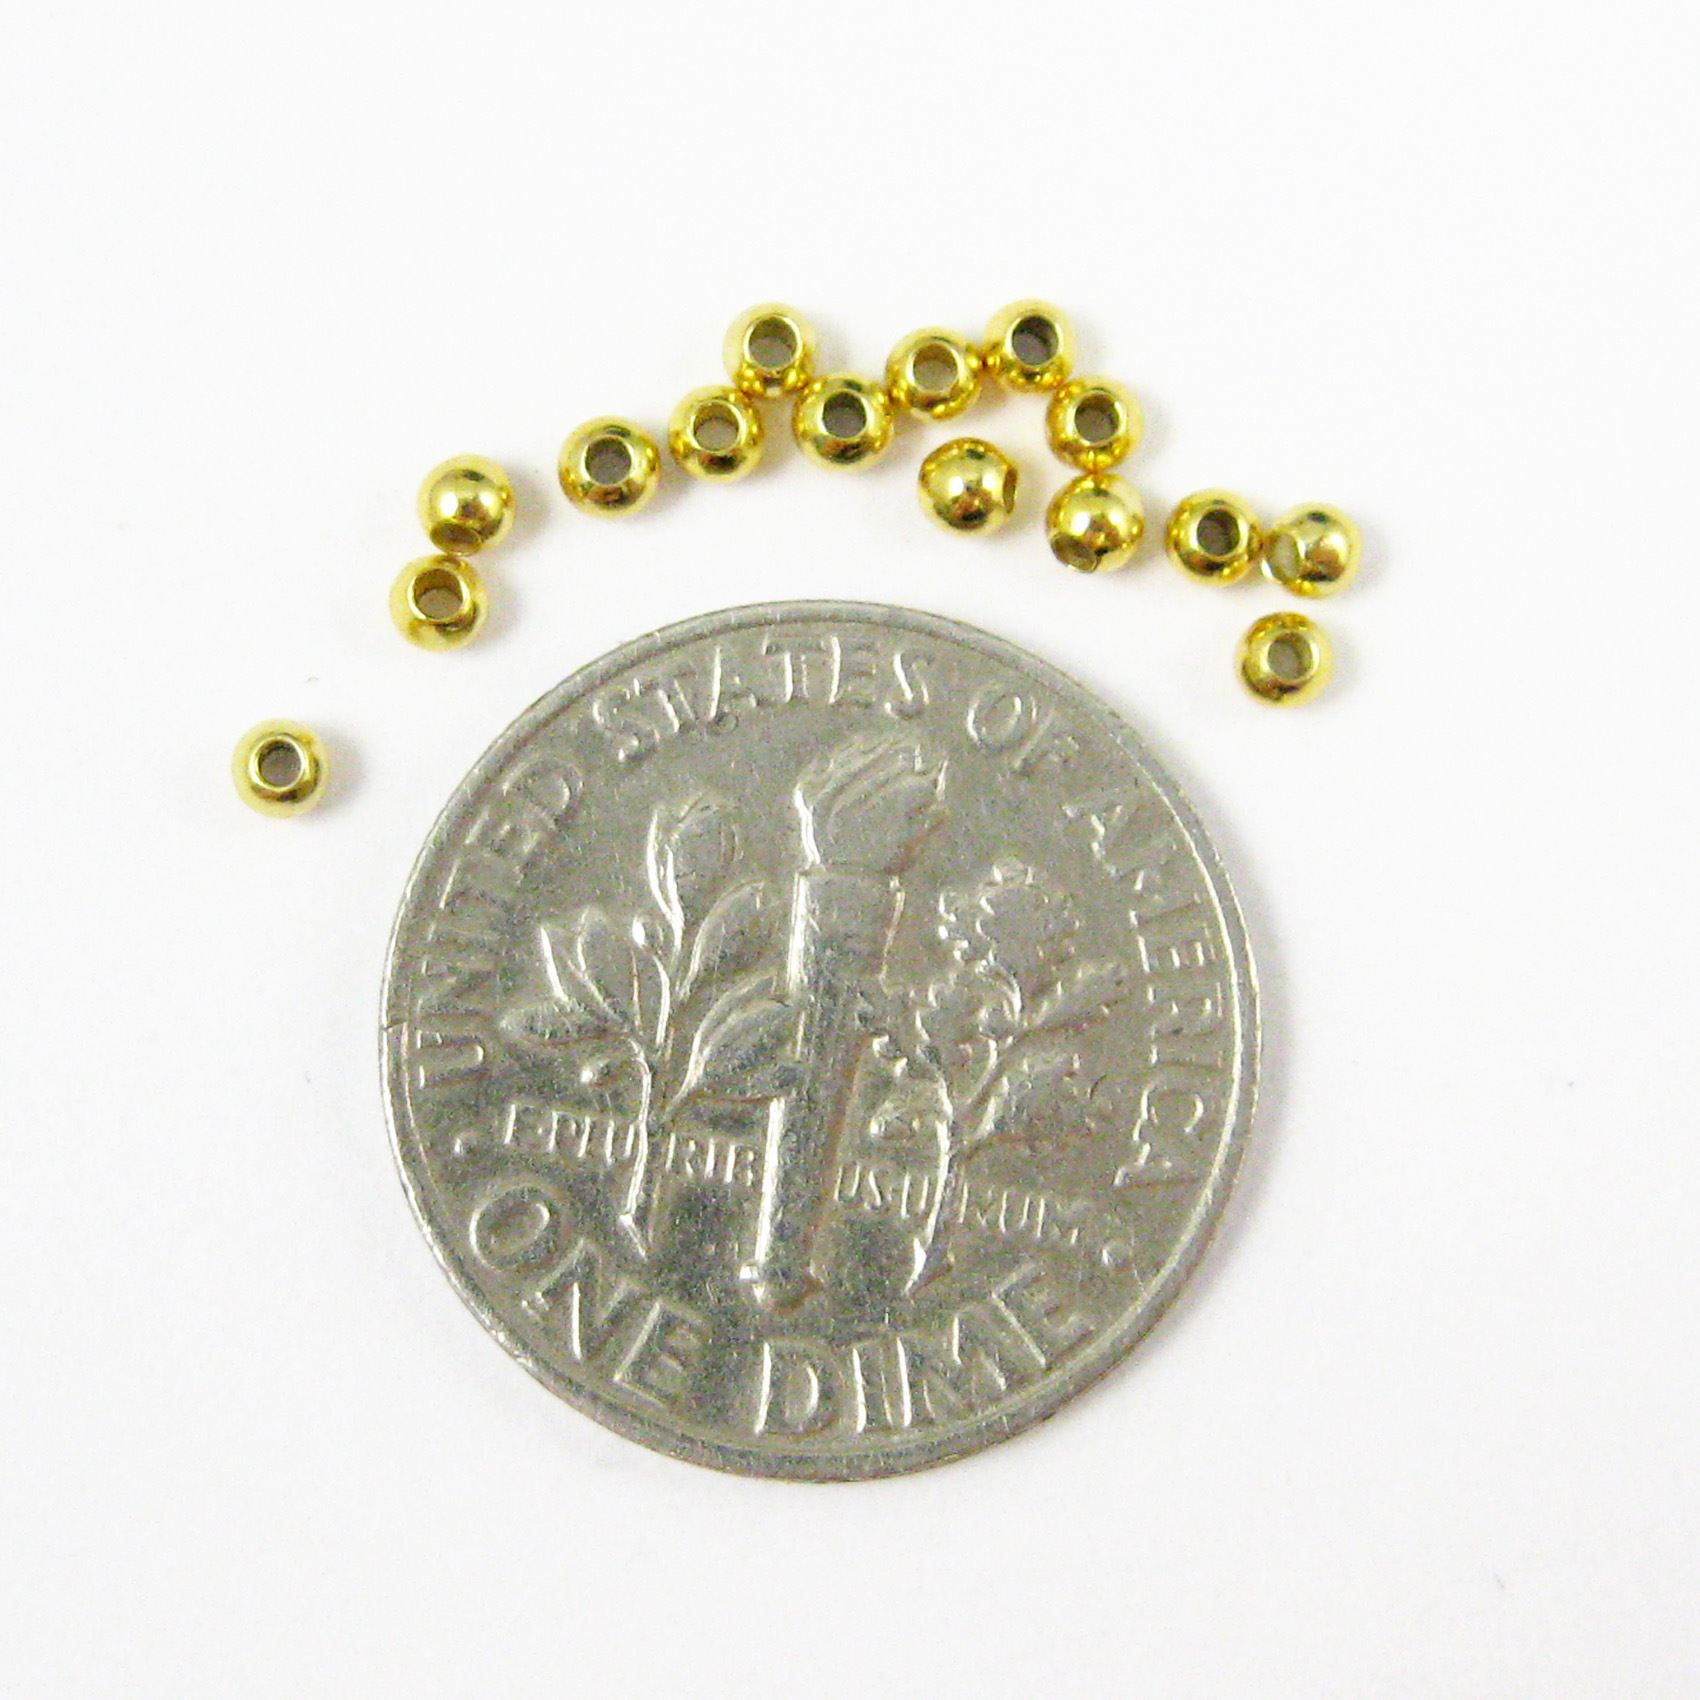 Vermeil, Gold plated over Sterling Silver Findings - Smooth Round Shaped Beads - 2mm ( 50 pcs)